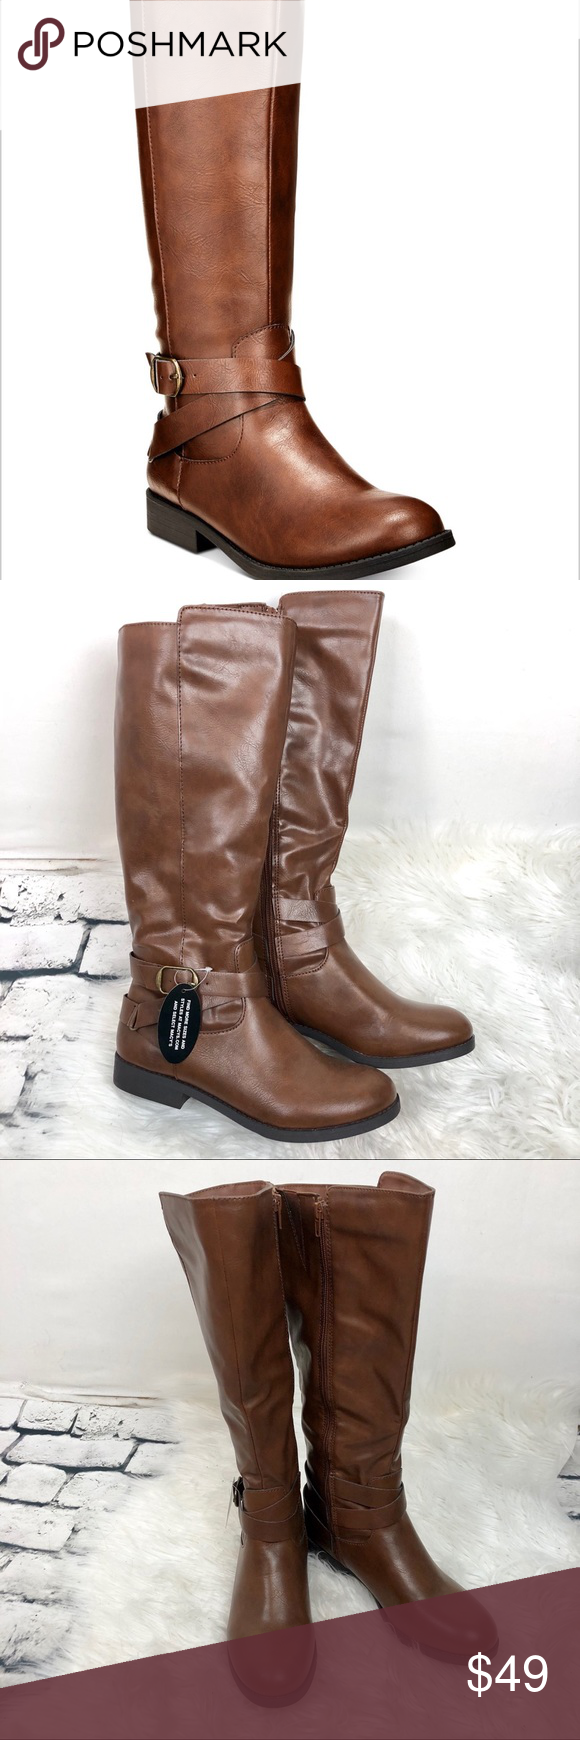 28d77f9939e Style Company Madixe riding boot Sz 8 M cognac Reasonable offers welcome  Style   Company (Macy s) NWT Cognac brown riding boots Sz 8 M Extender on  top of ...